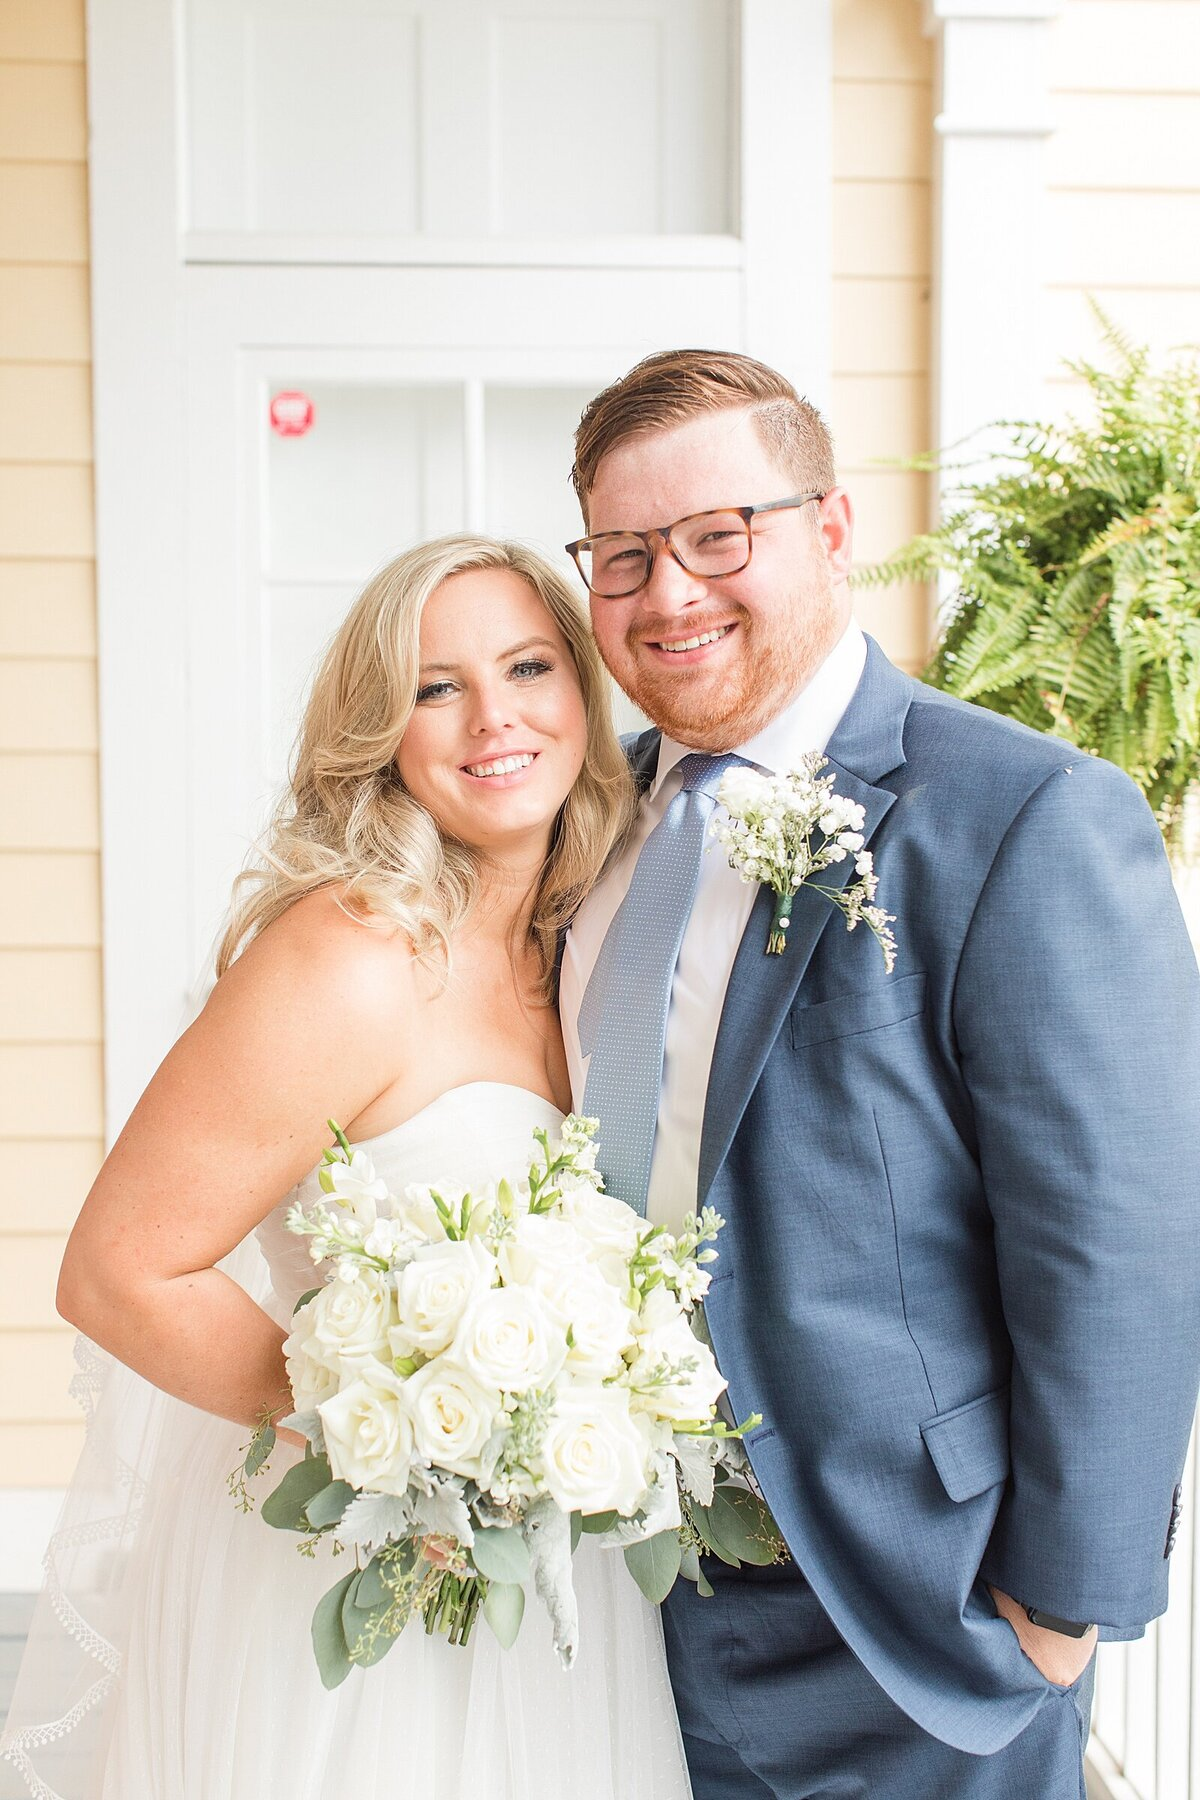 Kara Webster Photography | Mac & Maggie | Bradshaw-Duncan House Louisville, KY Wedding Photographer_0029